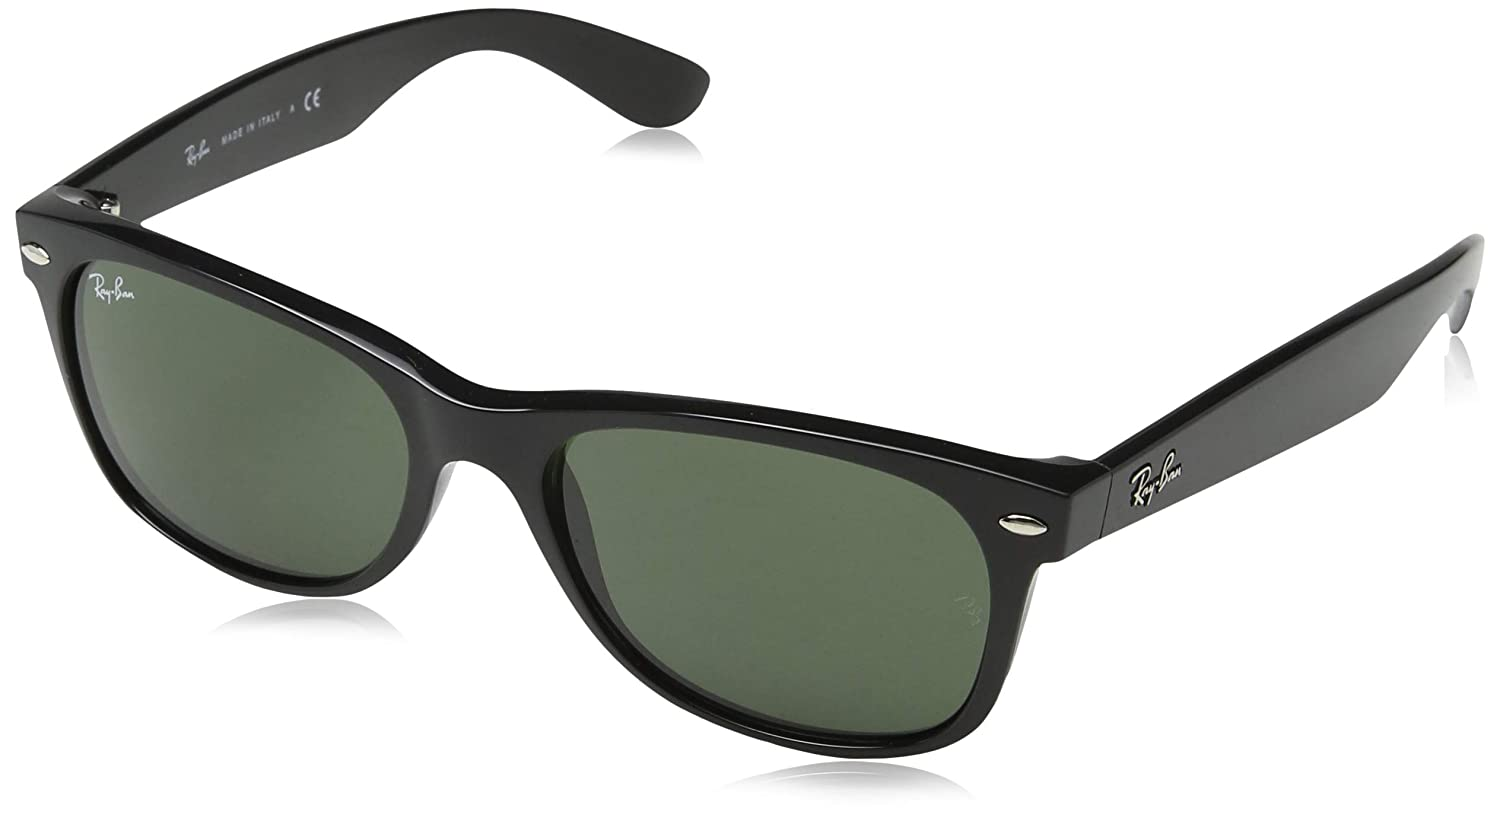 Amazon.com  Ray-Ban RB2132 - New Wayfarer Non-Polarized Sunglasses Black  Frame Crystal Green Lens Size 55  Ray-Ban  Clothing 90849ed23c